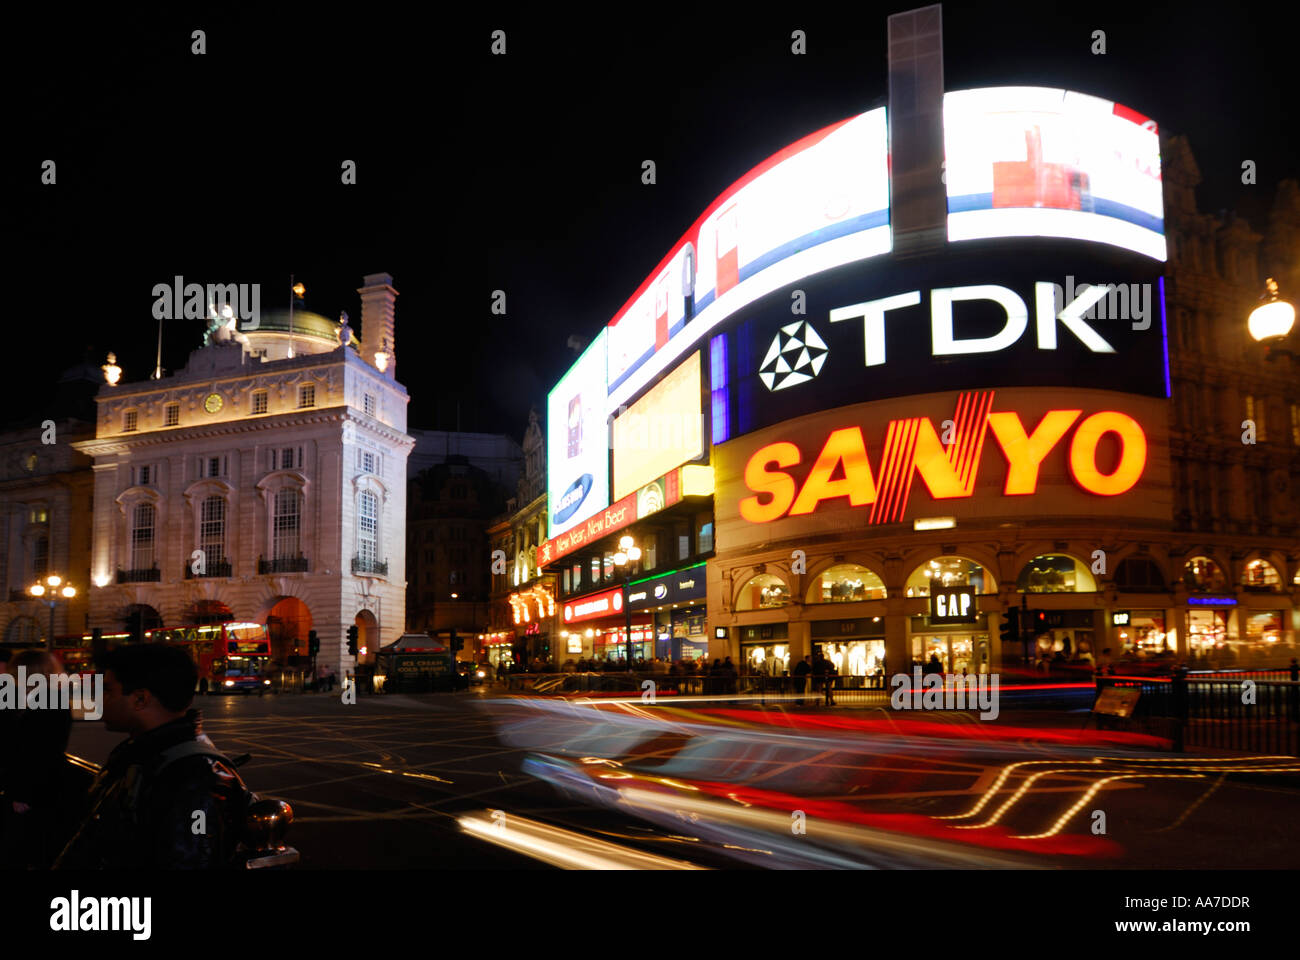 picadilly circus at night - Stock Image